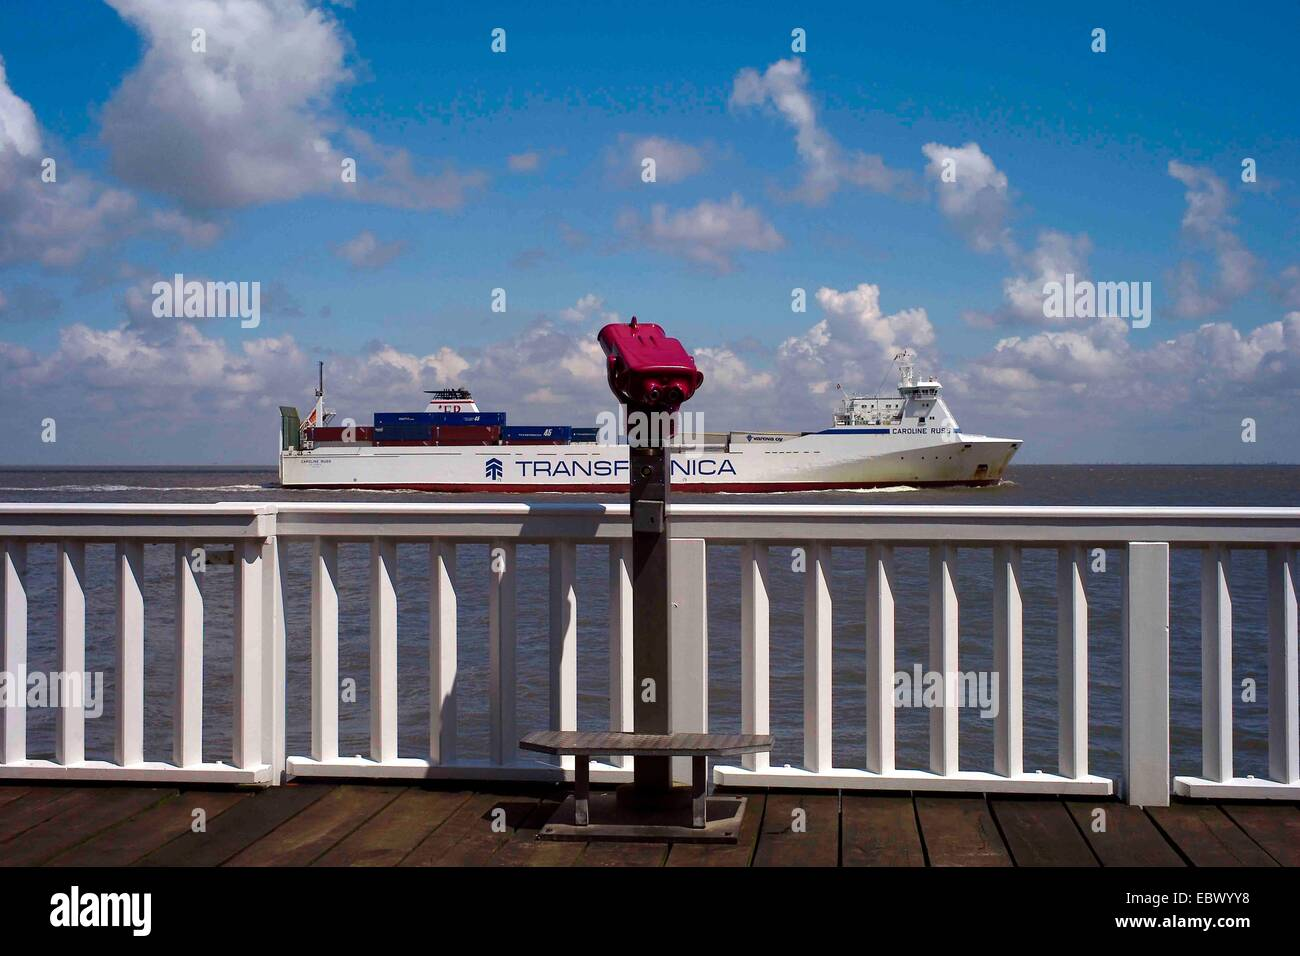 ship passimg the Alte Liebe, Germany, Lower Saxony, Cuxhaven - Stock Image